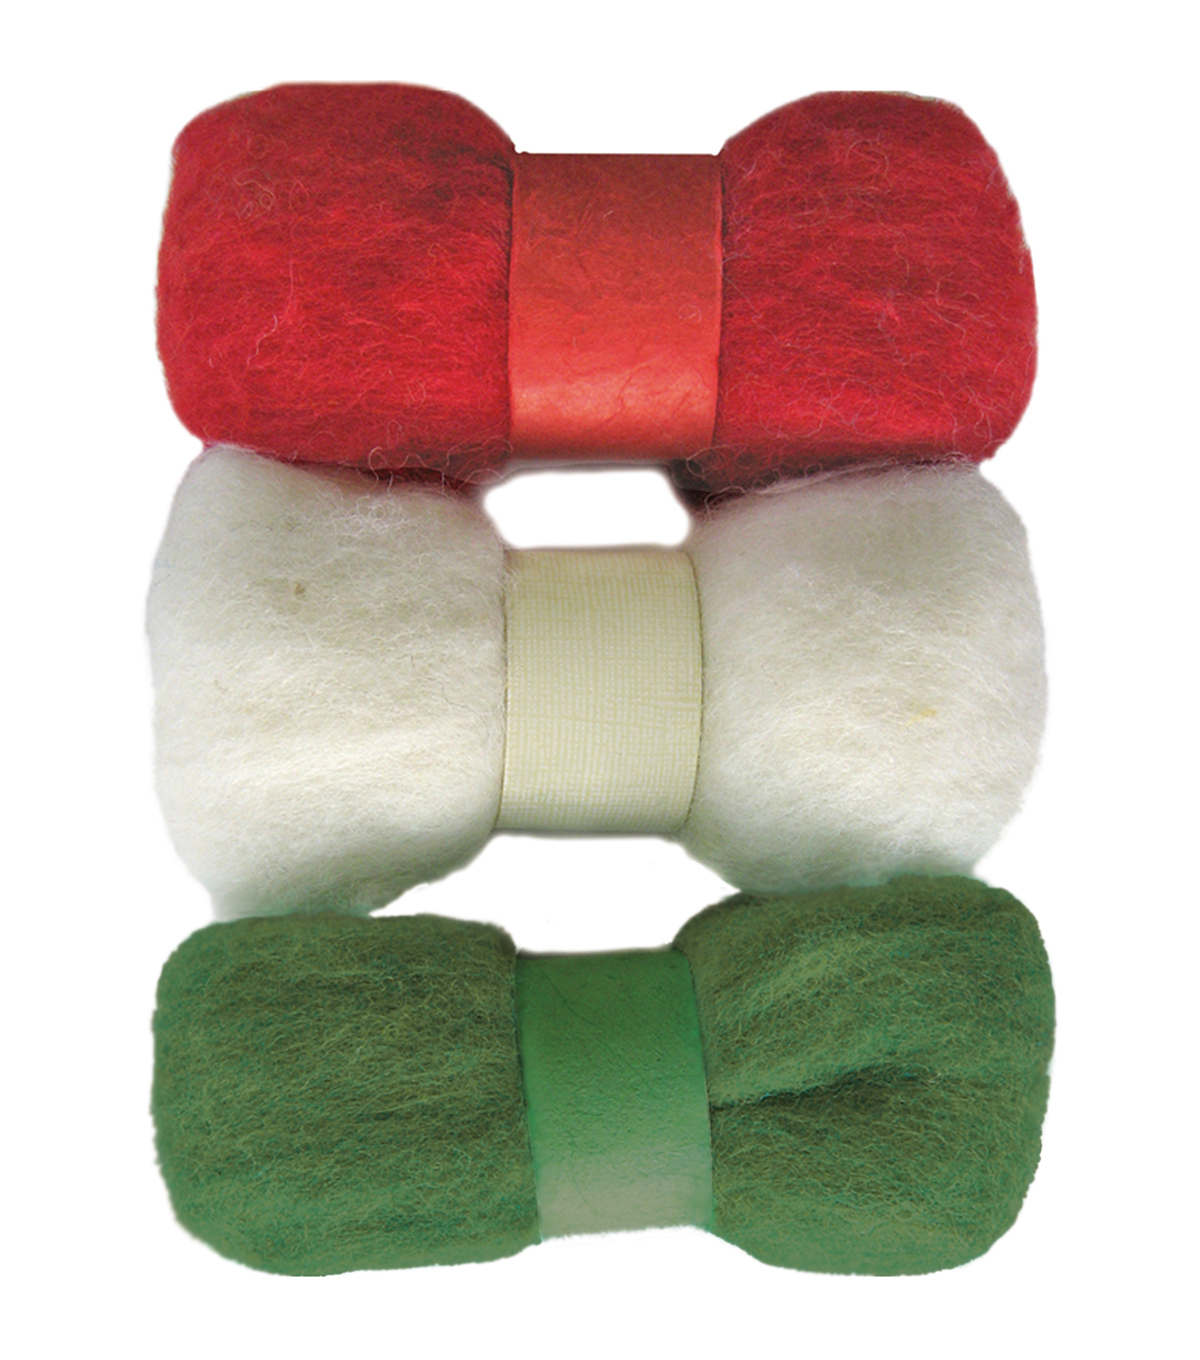 Feltworks Roving Trio Pack 1.58oz-Red, White & Green